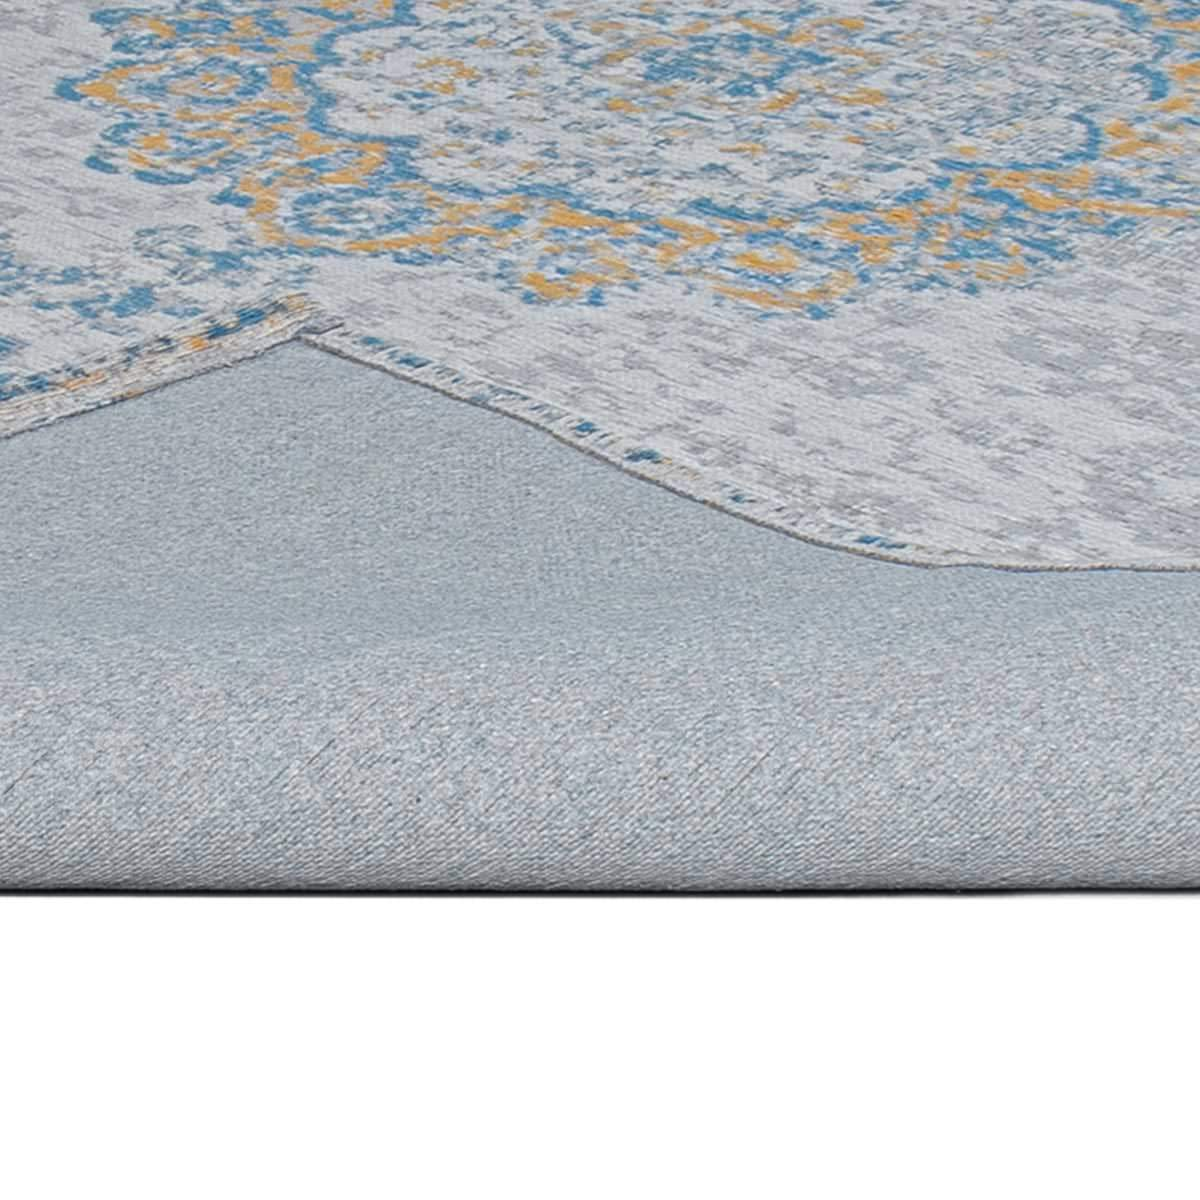 Marseille Rug 34 Blue/Beige/Yellow 5